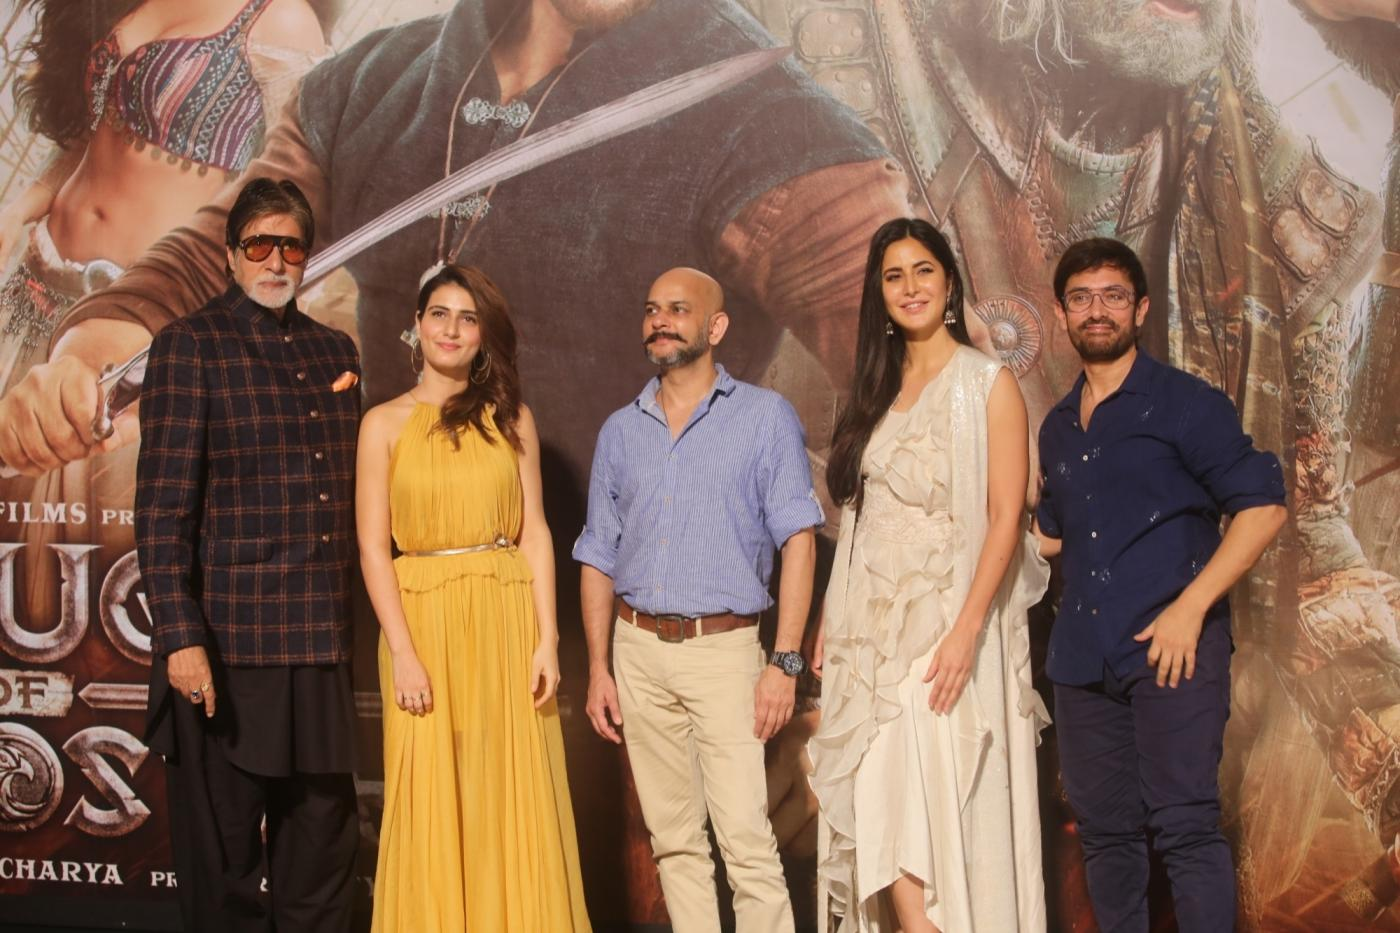 "Mumbai: Actors Amitabh Bachchan, Aamir Khan, Fatima Sana Shaikh, Katrina Kaif and director Vijay Krishna Acharya at the trailer launch of their upcoming film ""Thugs of Hindostan"" in Mumbai on Sept 27, 2018. (Photo: IANS) by ."